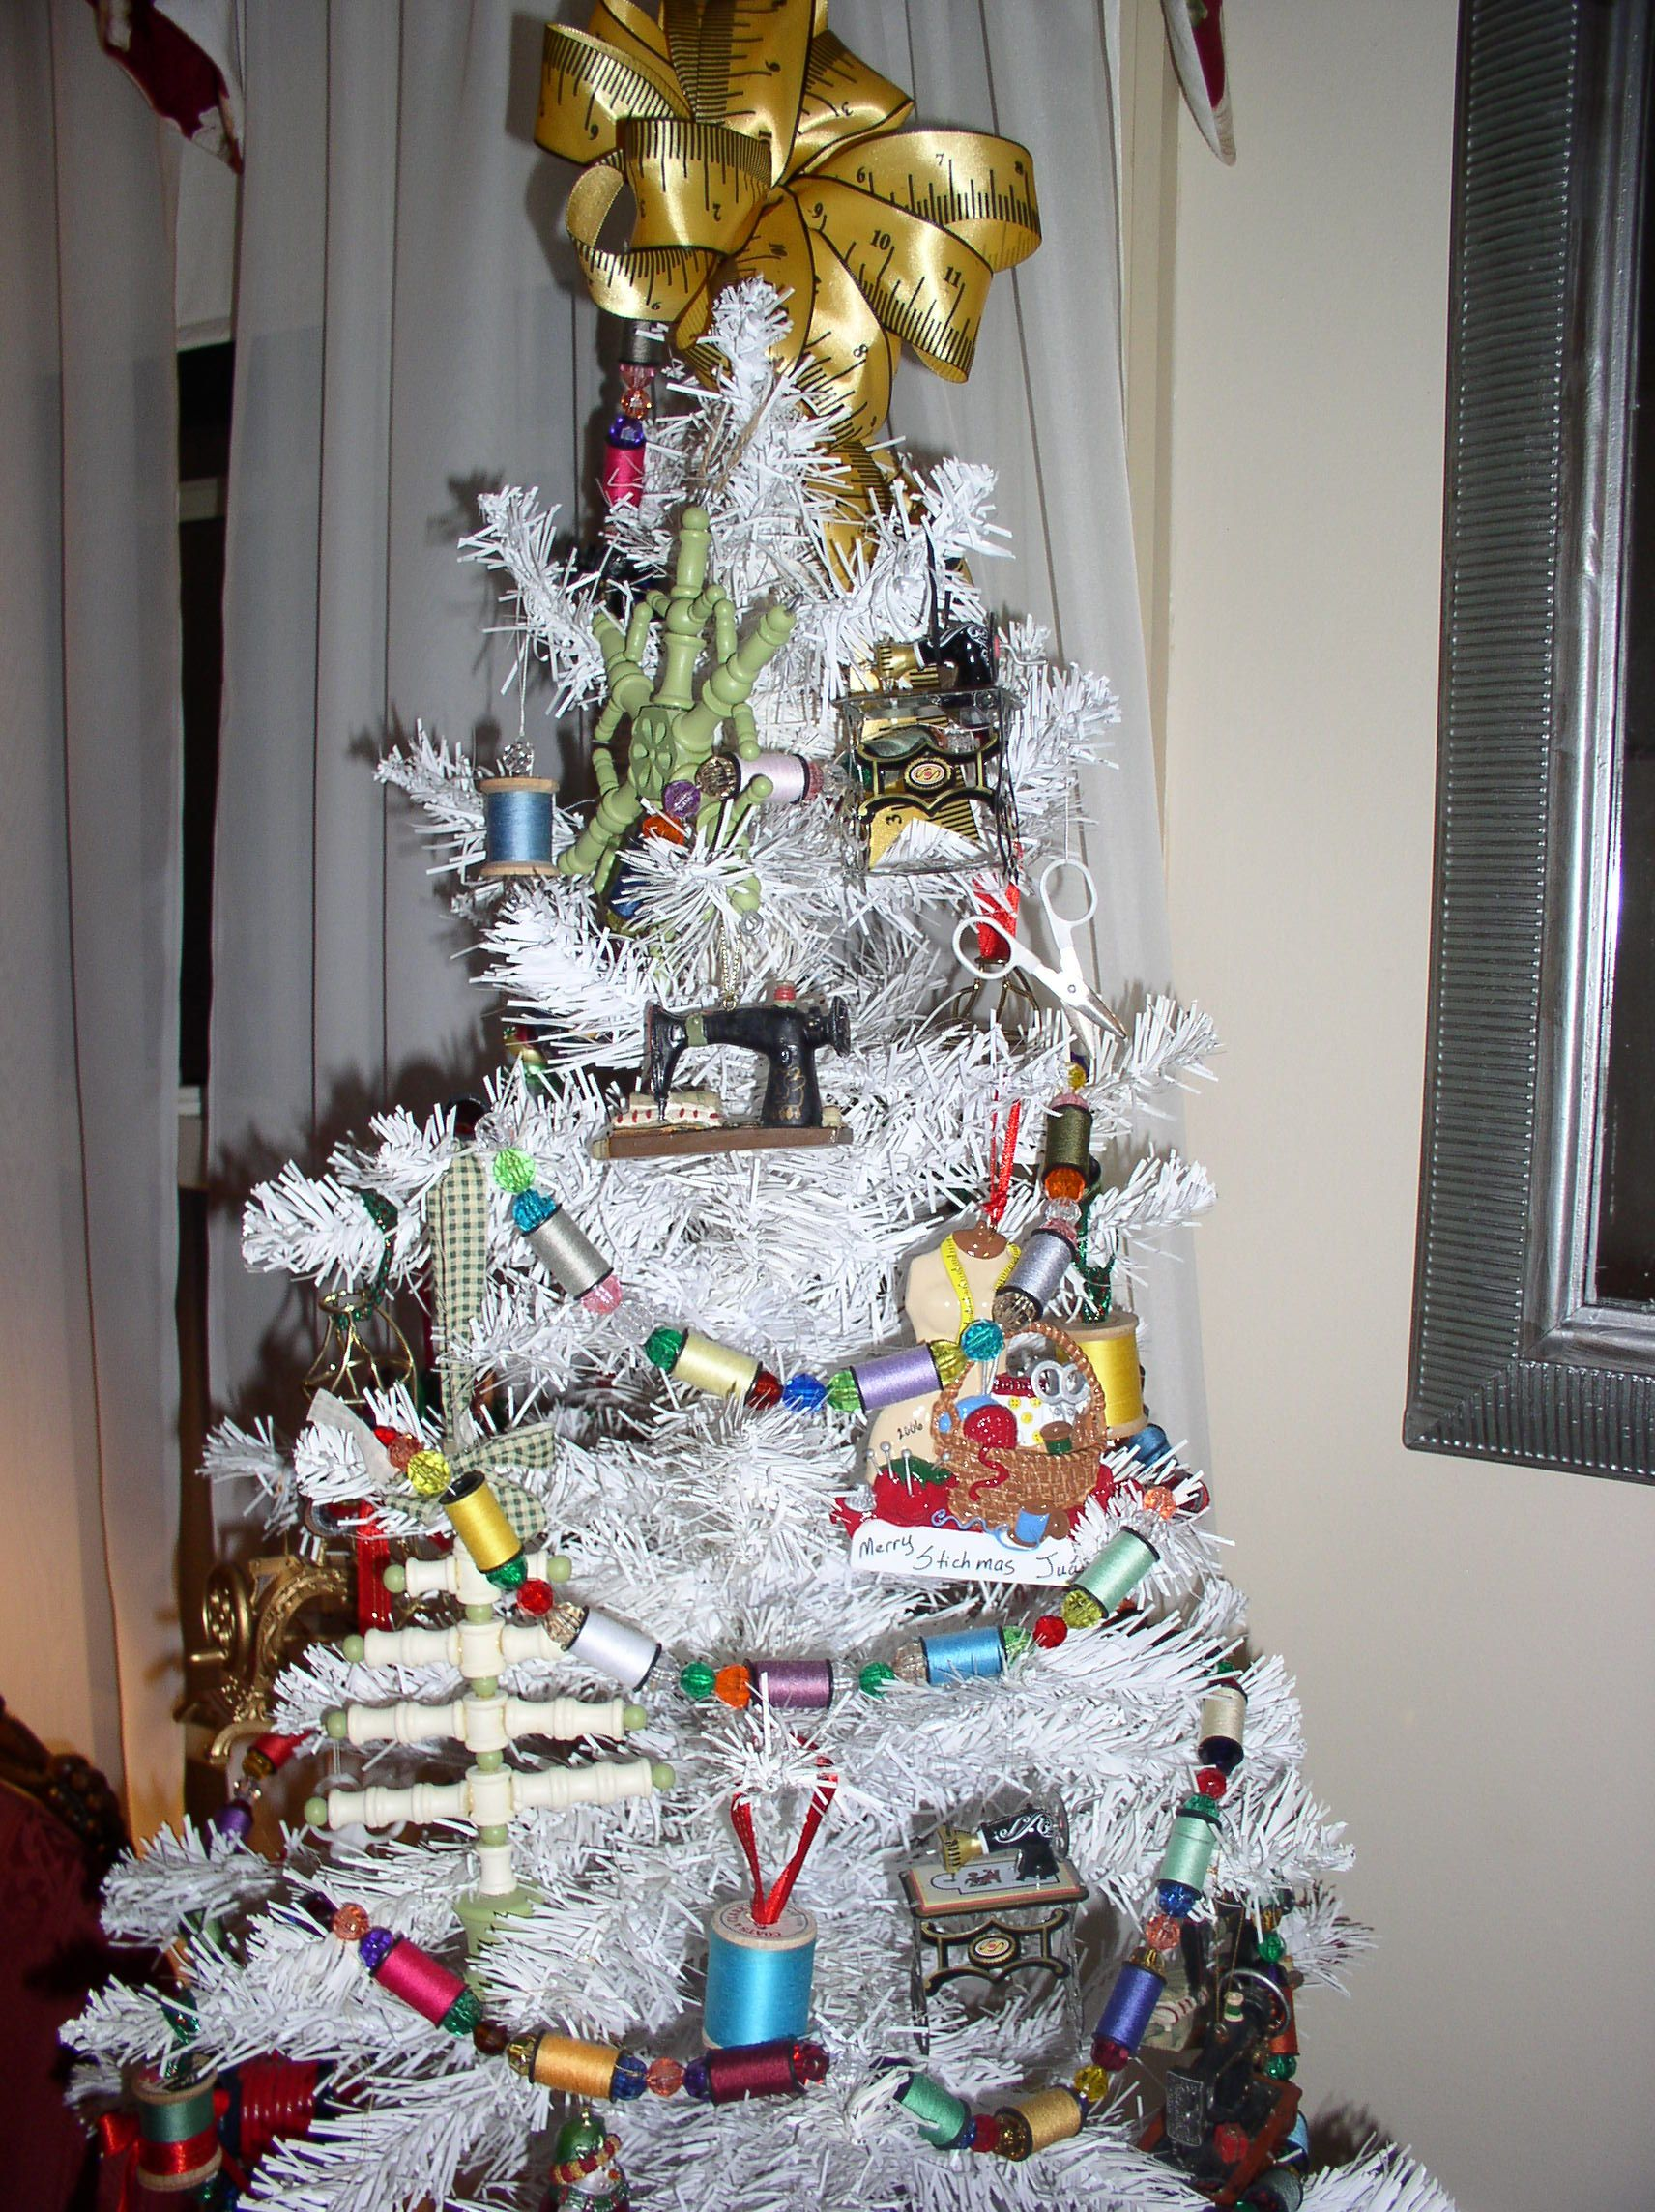 Sewing Themed Christmas Tree Garland Is Made From Beads